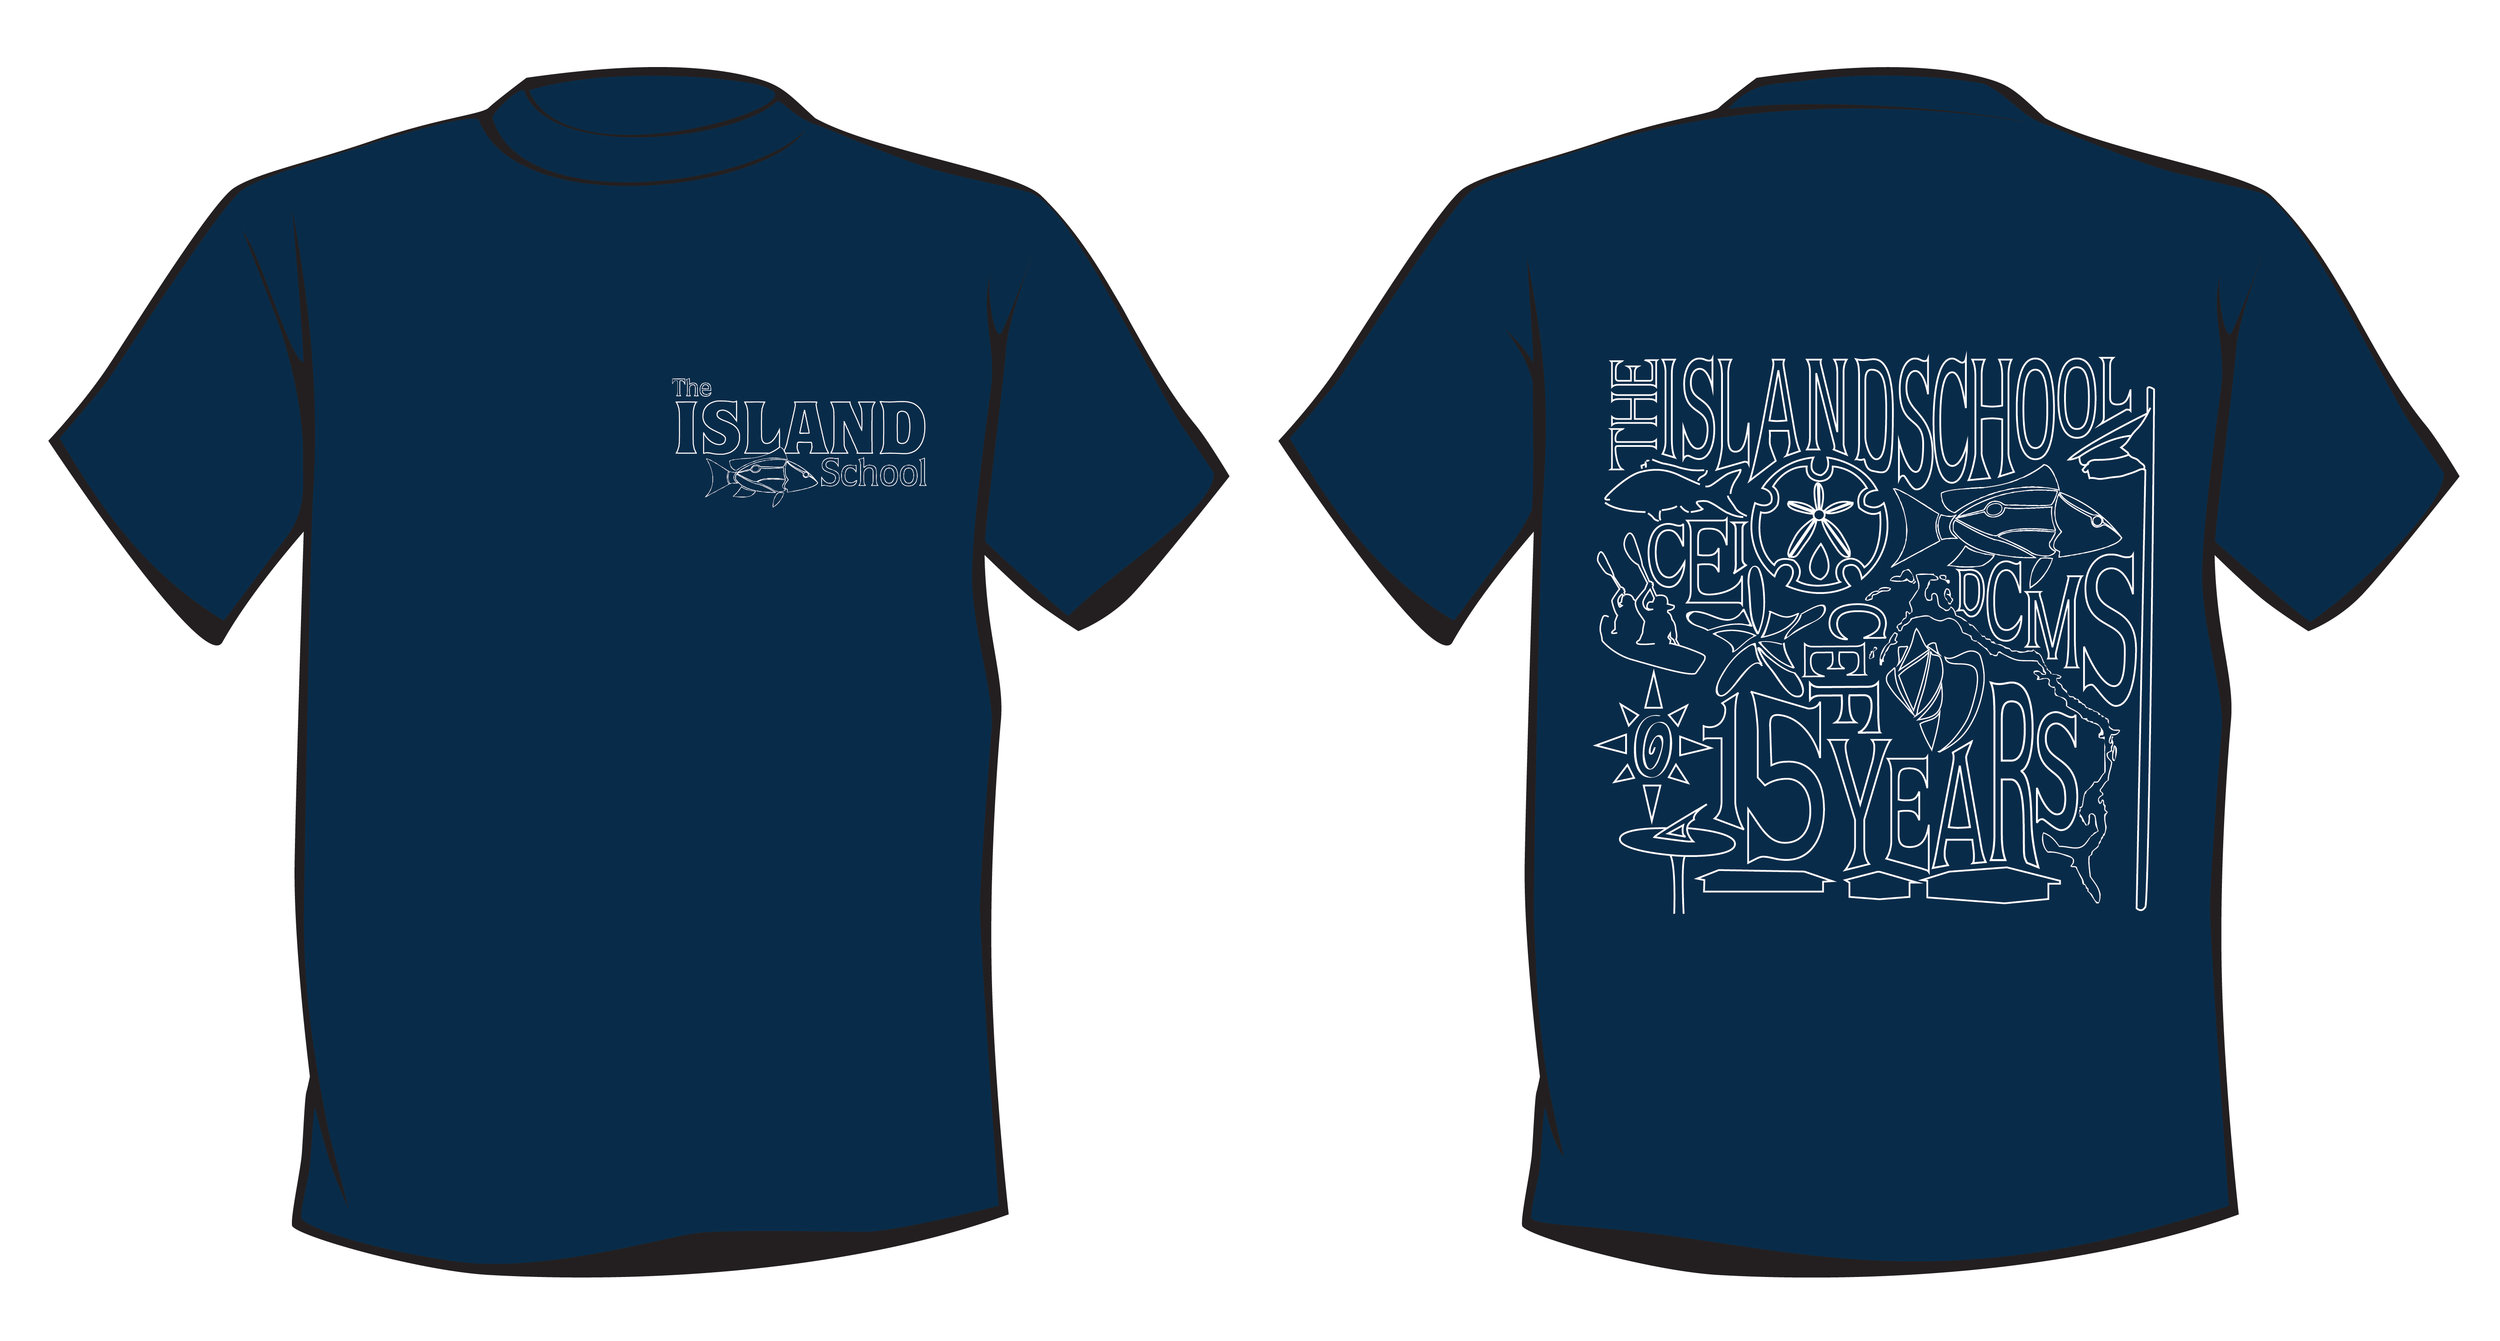 design_3 on shirt (1)